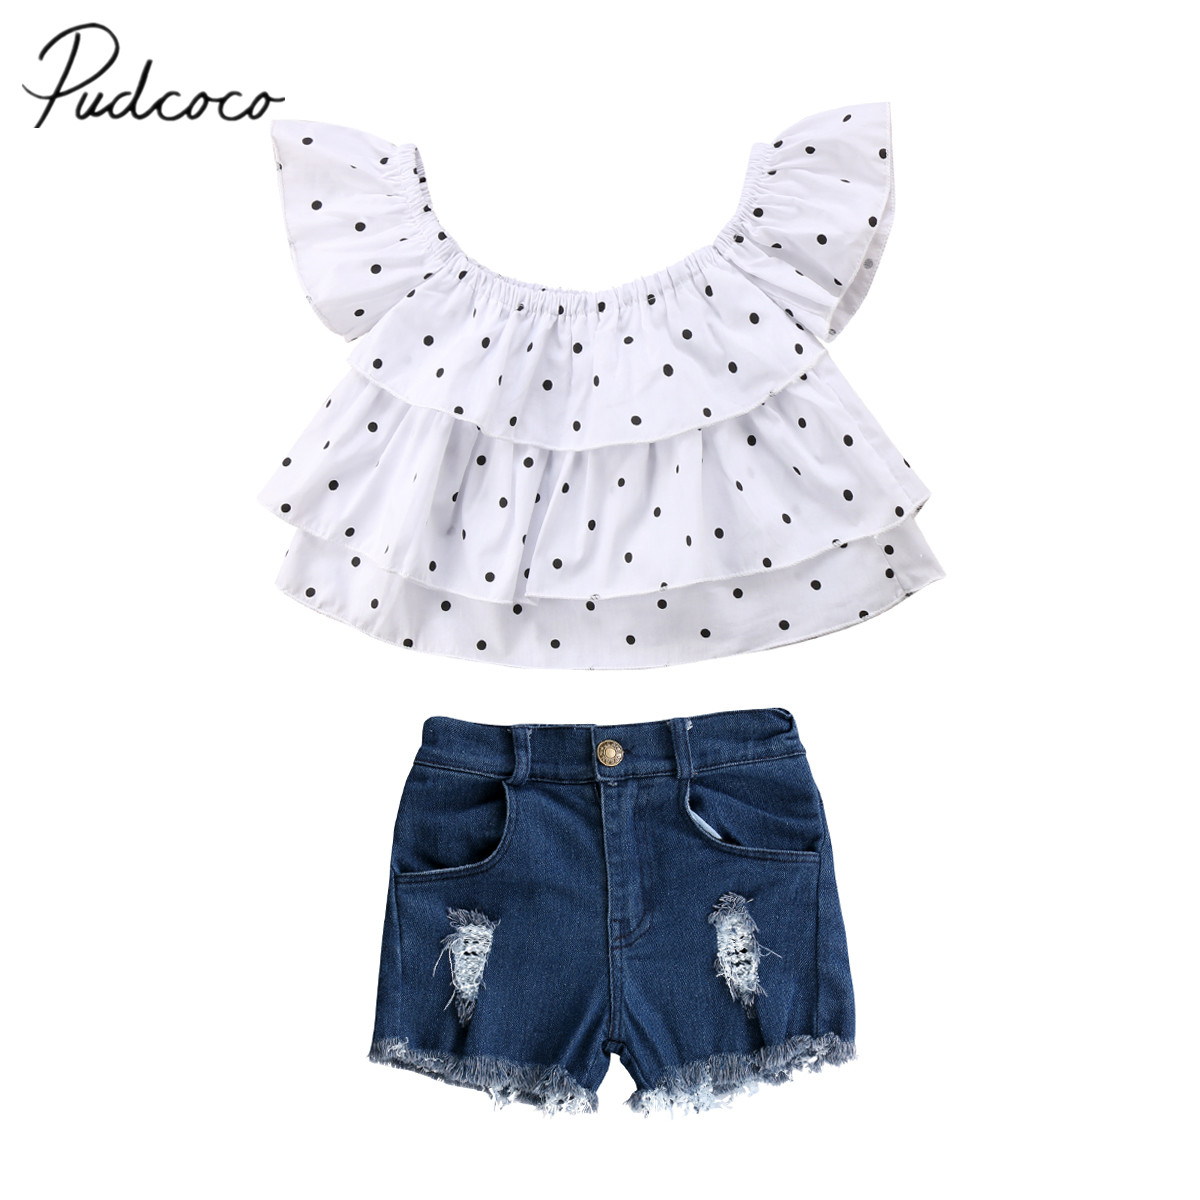 2018 Brand New Toddler Infant Child Kids Baby Girls Clothes T Shirt Tee Ruffled Tops Shorts Denim Pants 2Pcs Outfits Set 1-7T 1 7y toddler kids clothes 2017 fashion children girls leopard hooded vest t shirt tops hole jean denim shorts 2pcs clothing set